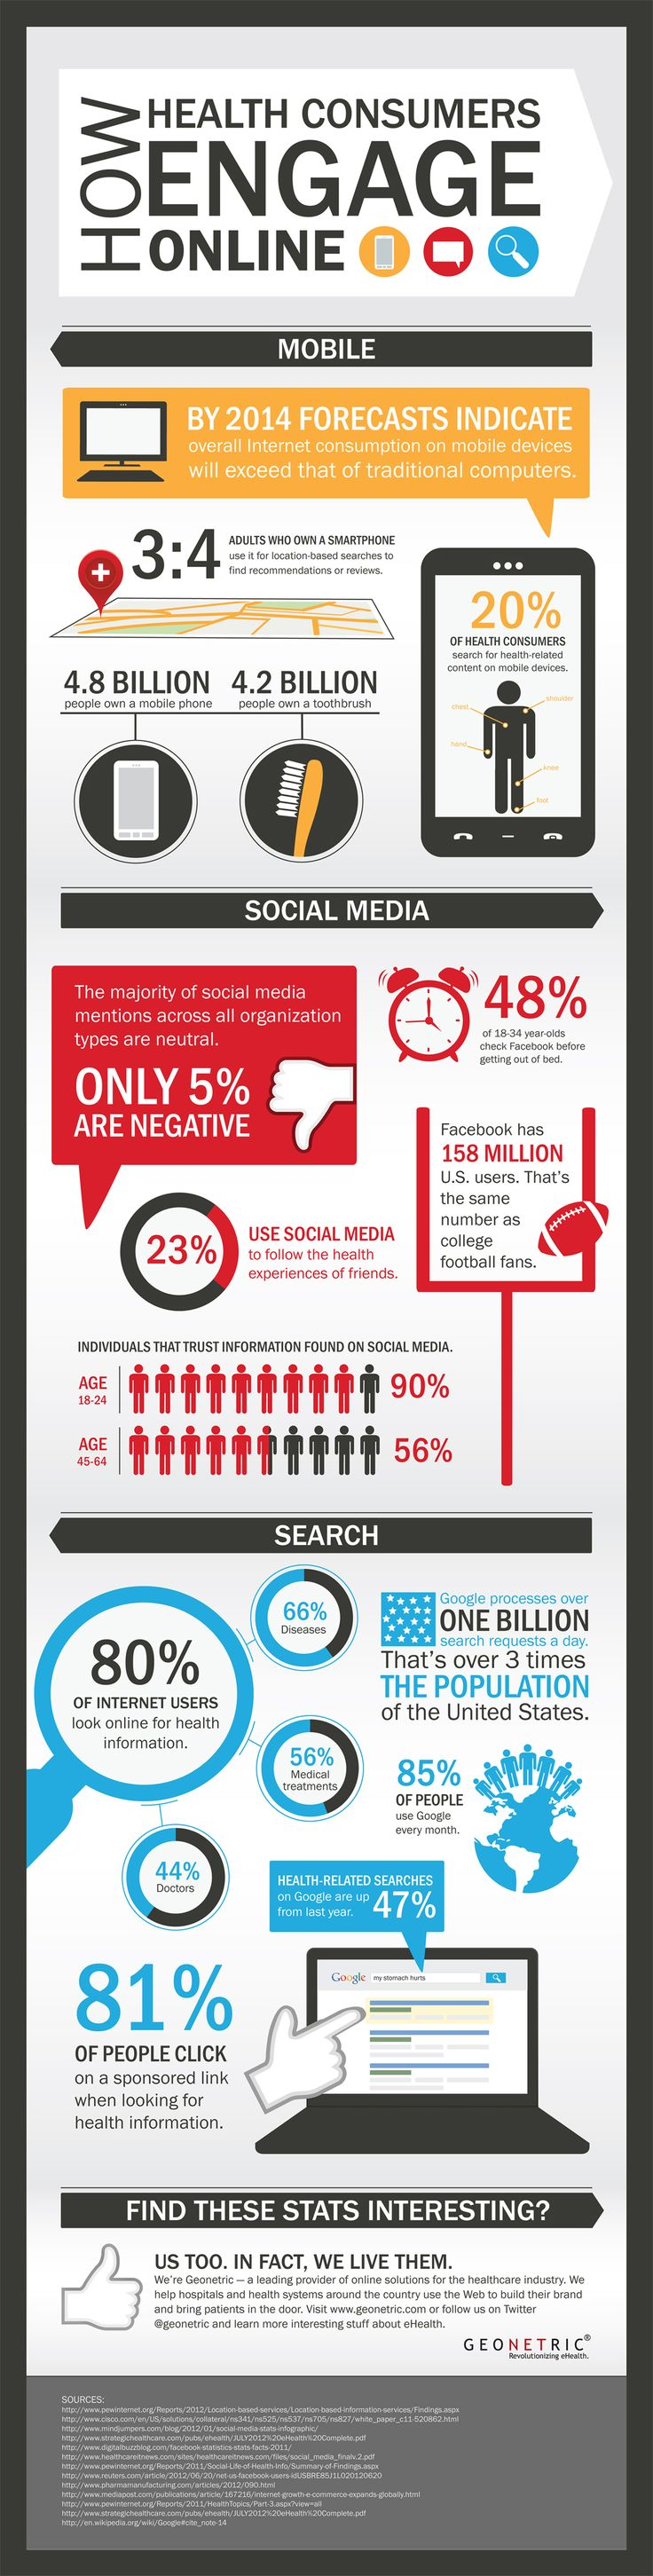 Infographic: How health consumers engage online #hcsm